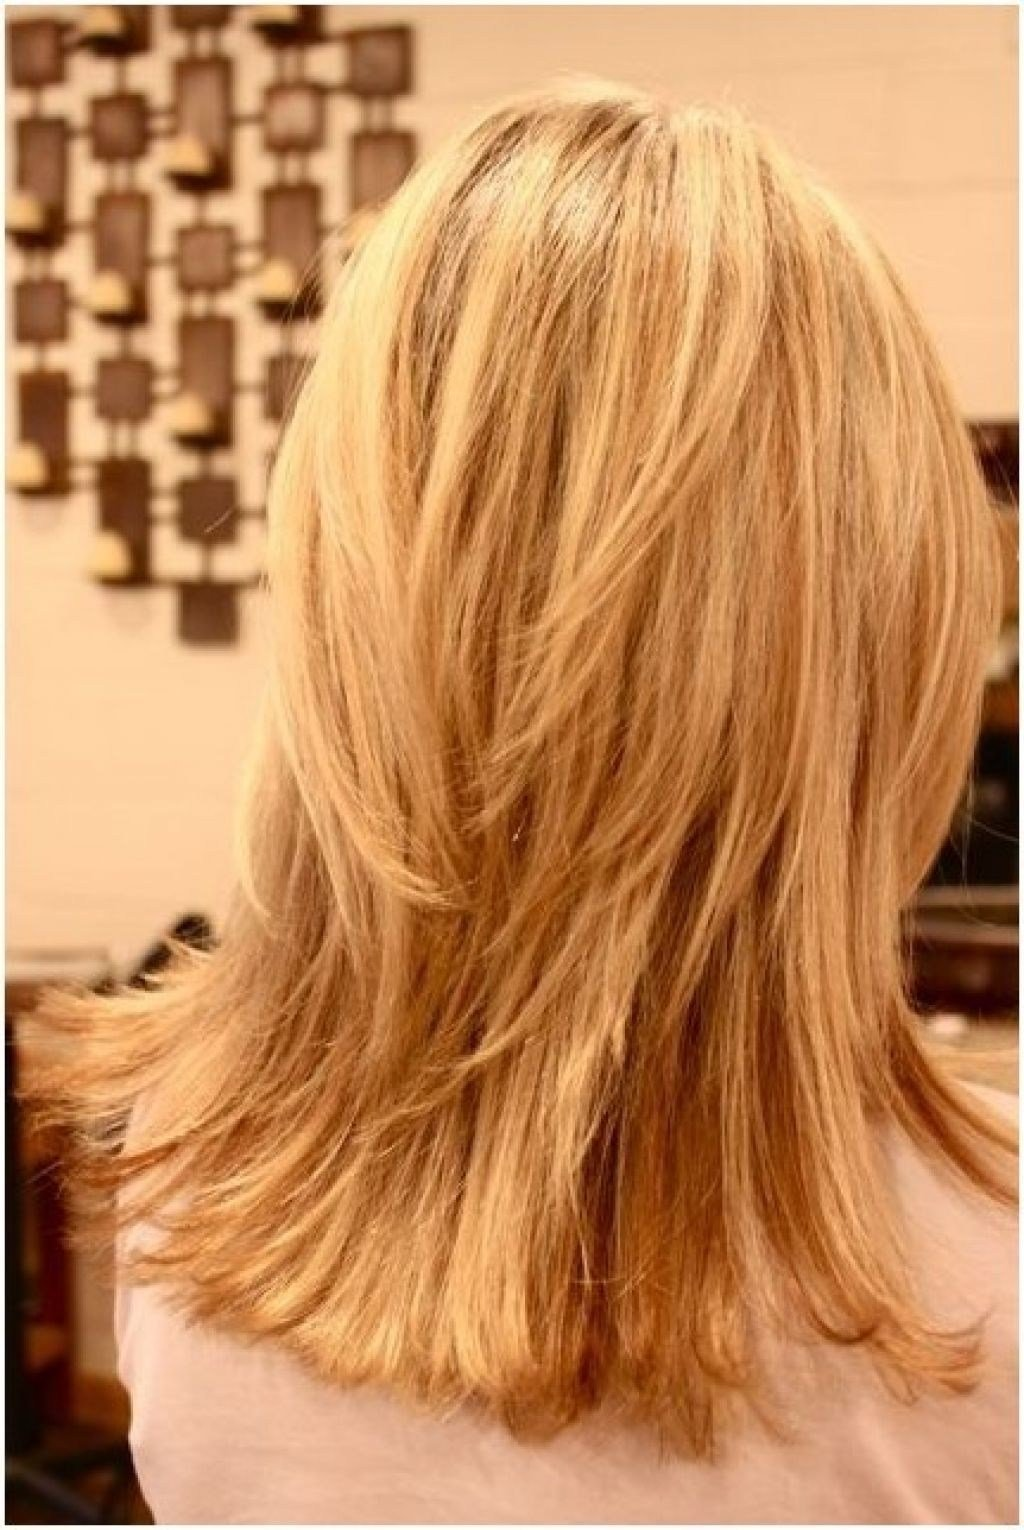 The Best Back Of Medium Hairstyles Hairstyle For Women Man Pictures